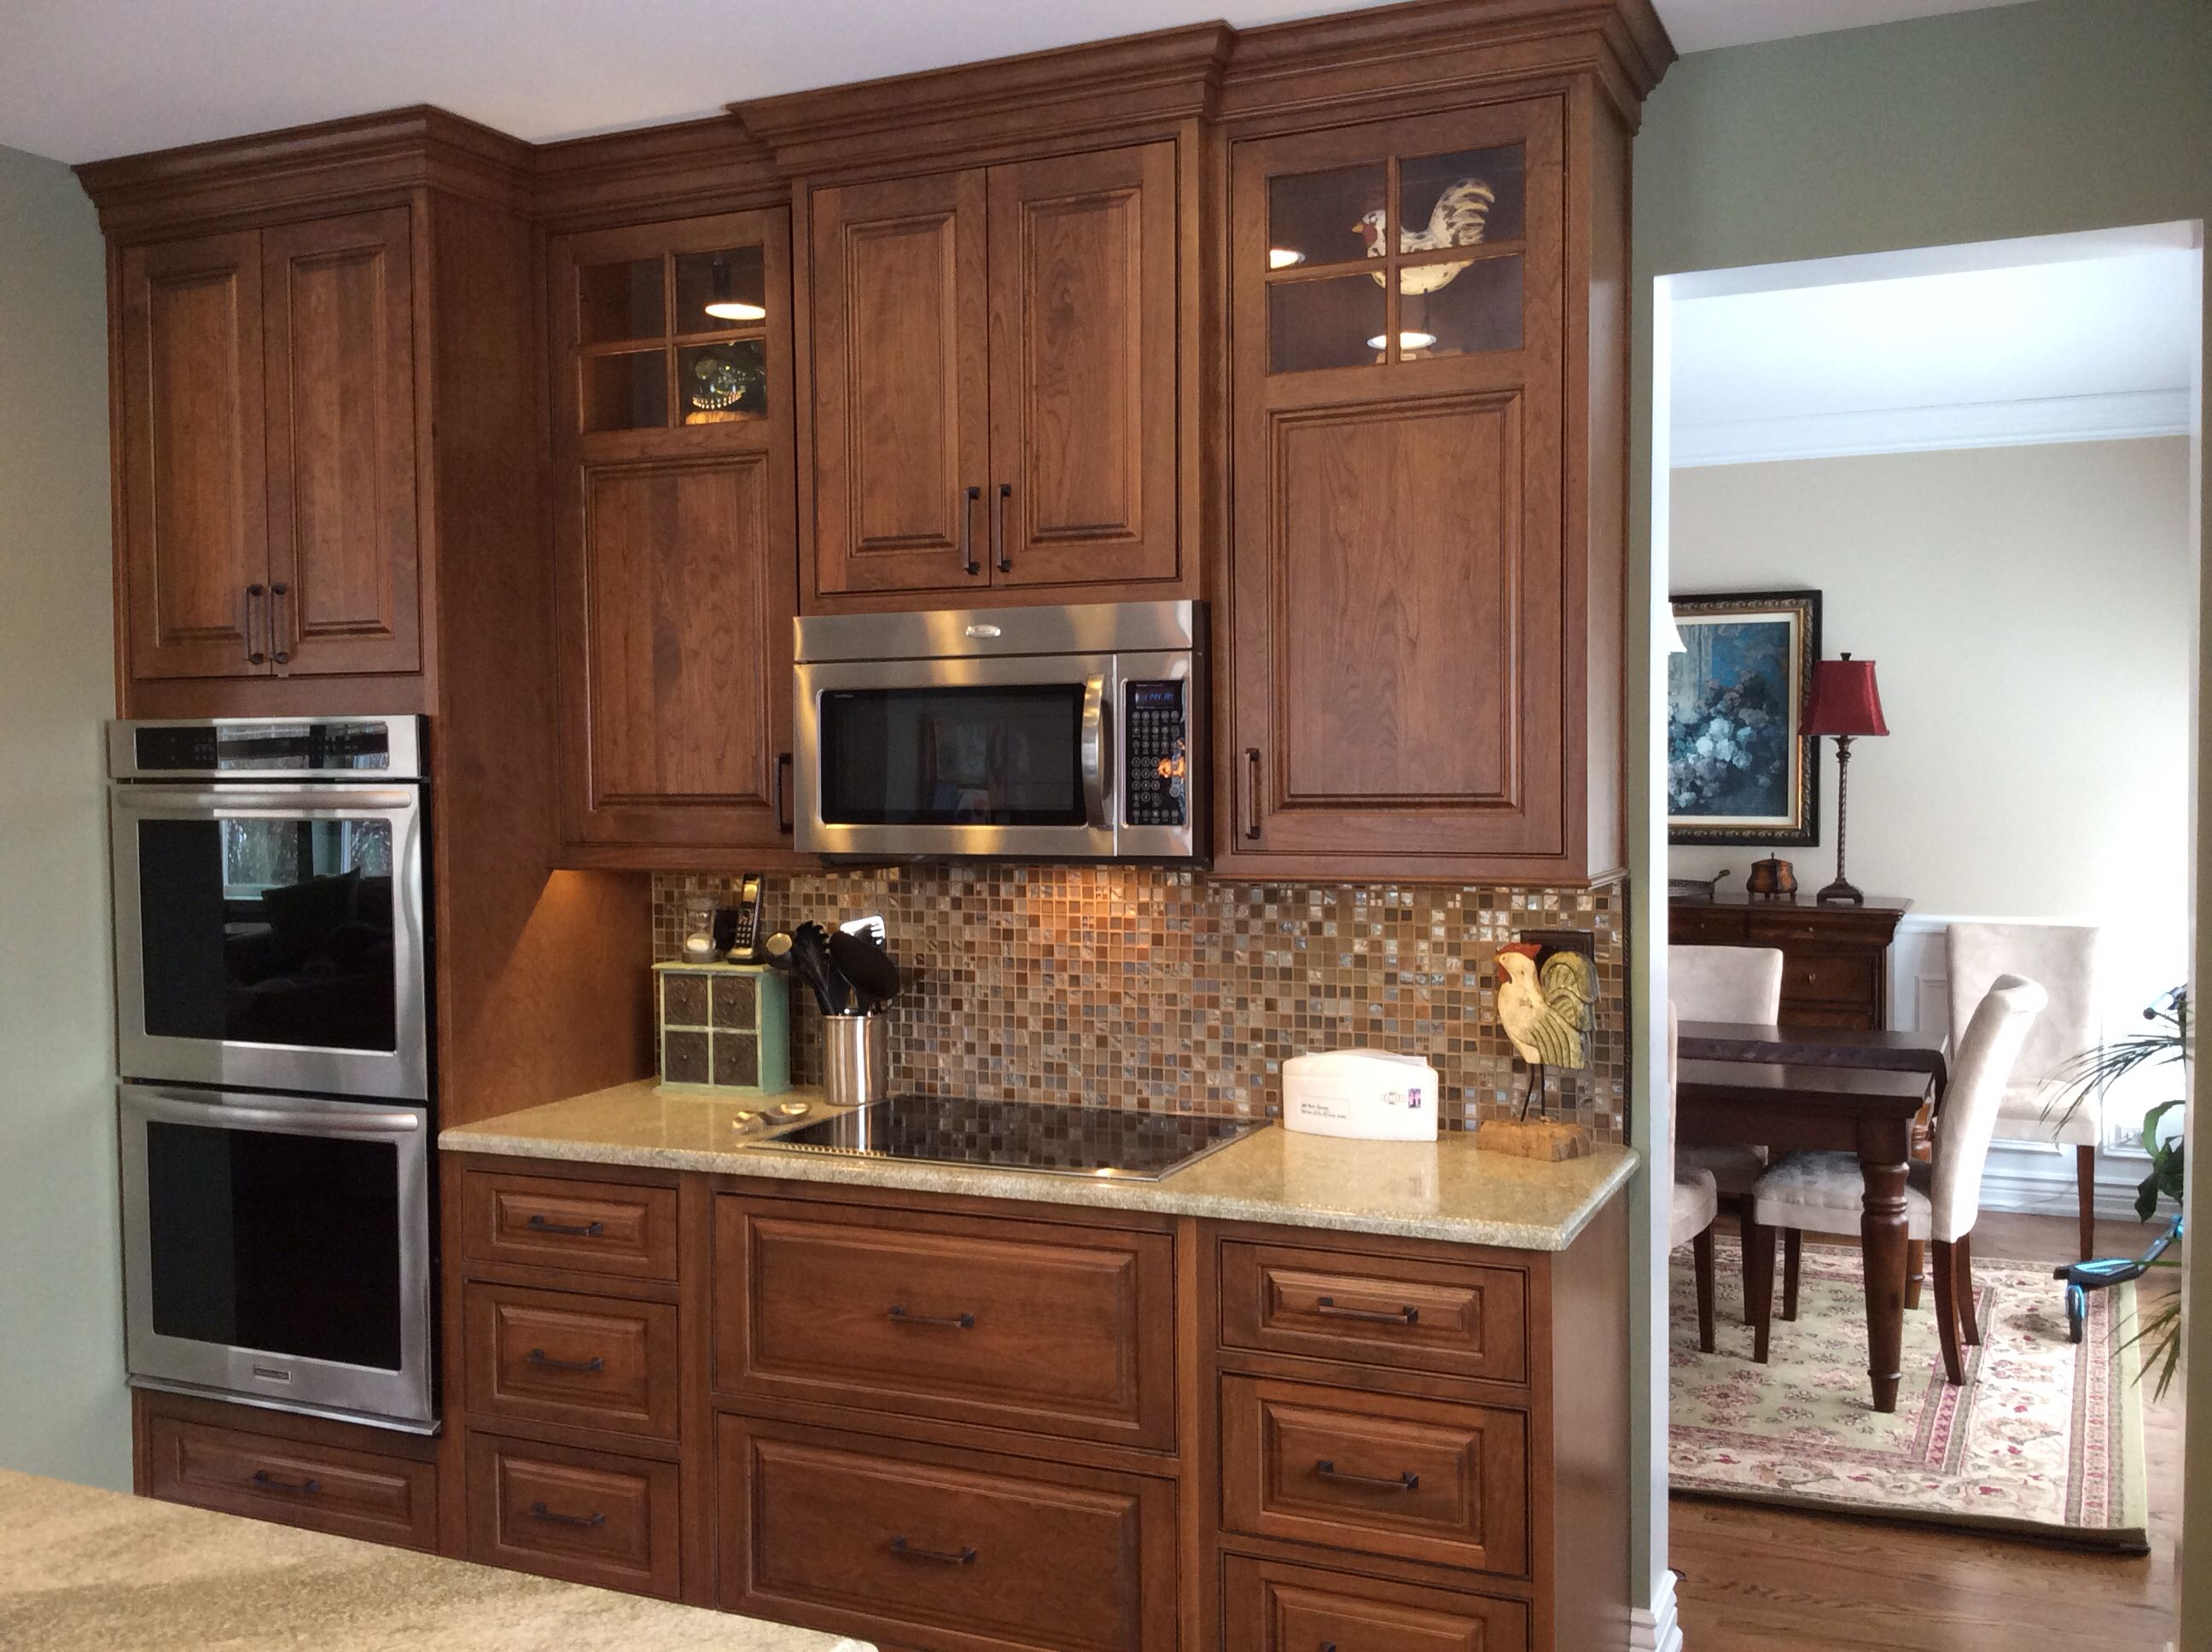 Shiloh Coffee Cherry Mocha Glaze Shiloh Cabinets Kitchen Cabinets Decor Kitchen Cabinets